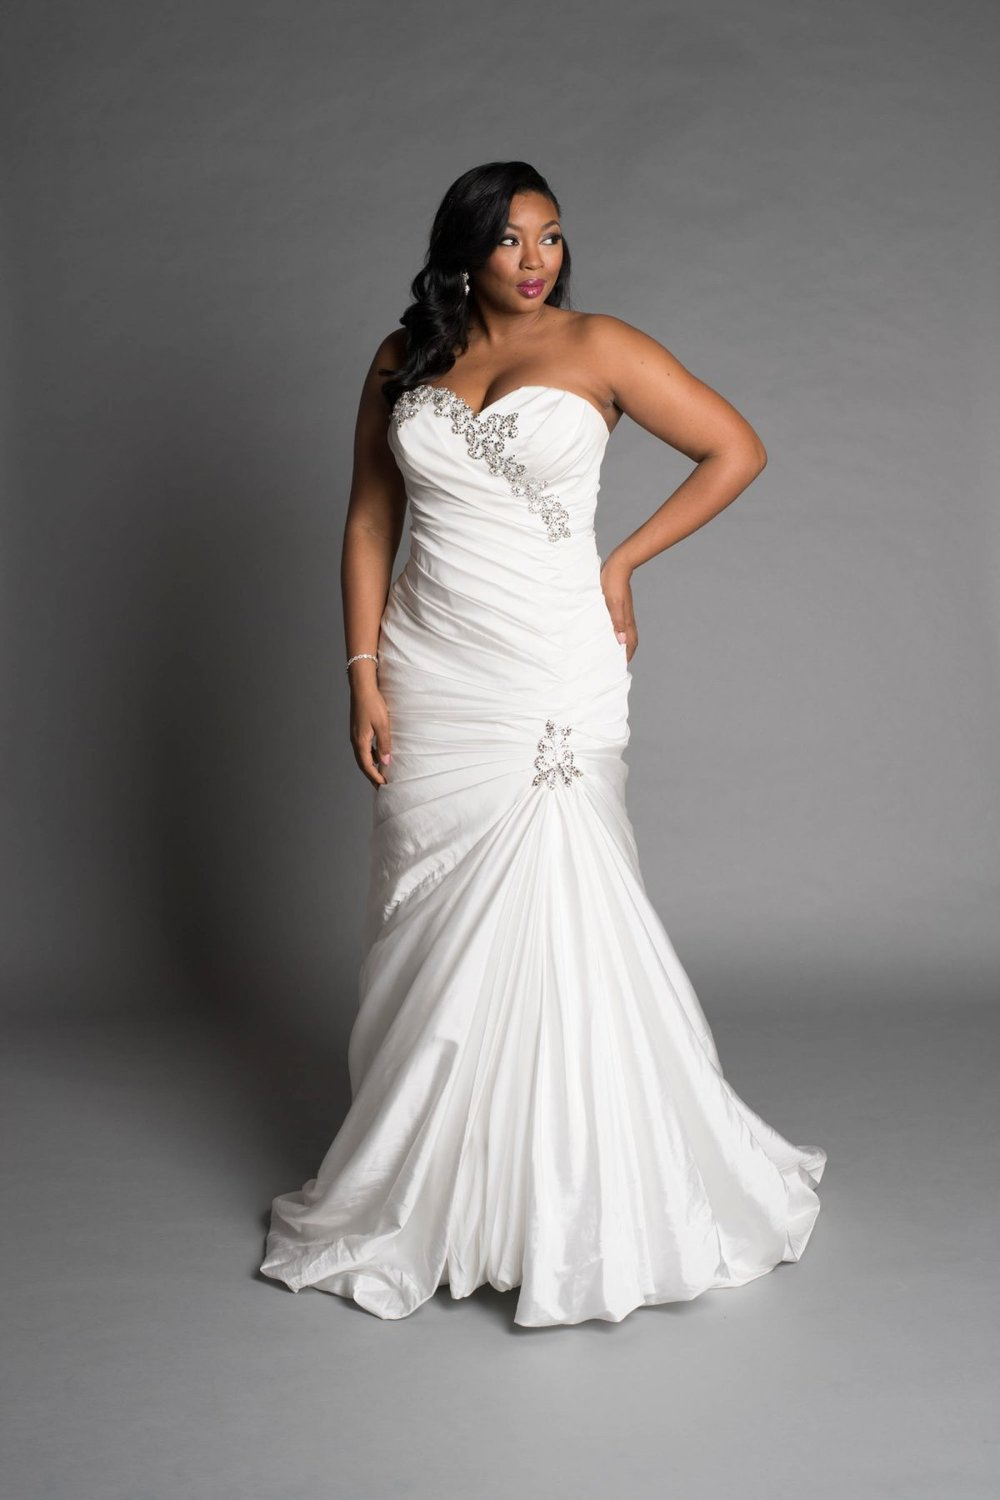 CLASSIC MERMAID WEDDING DRESS by PNINA TORNAI